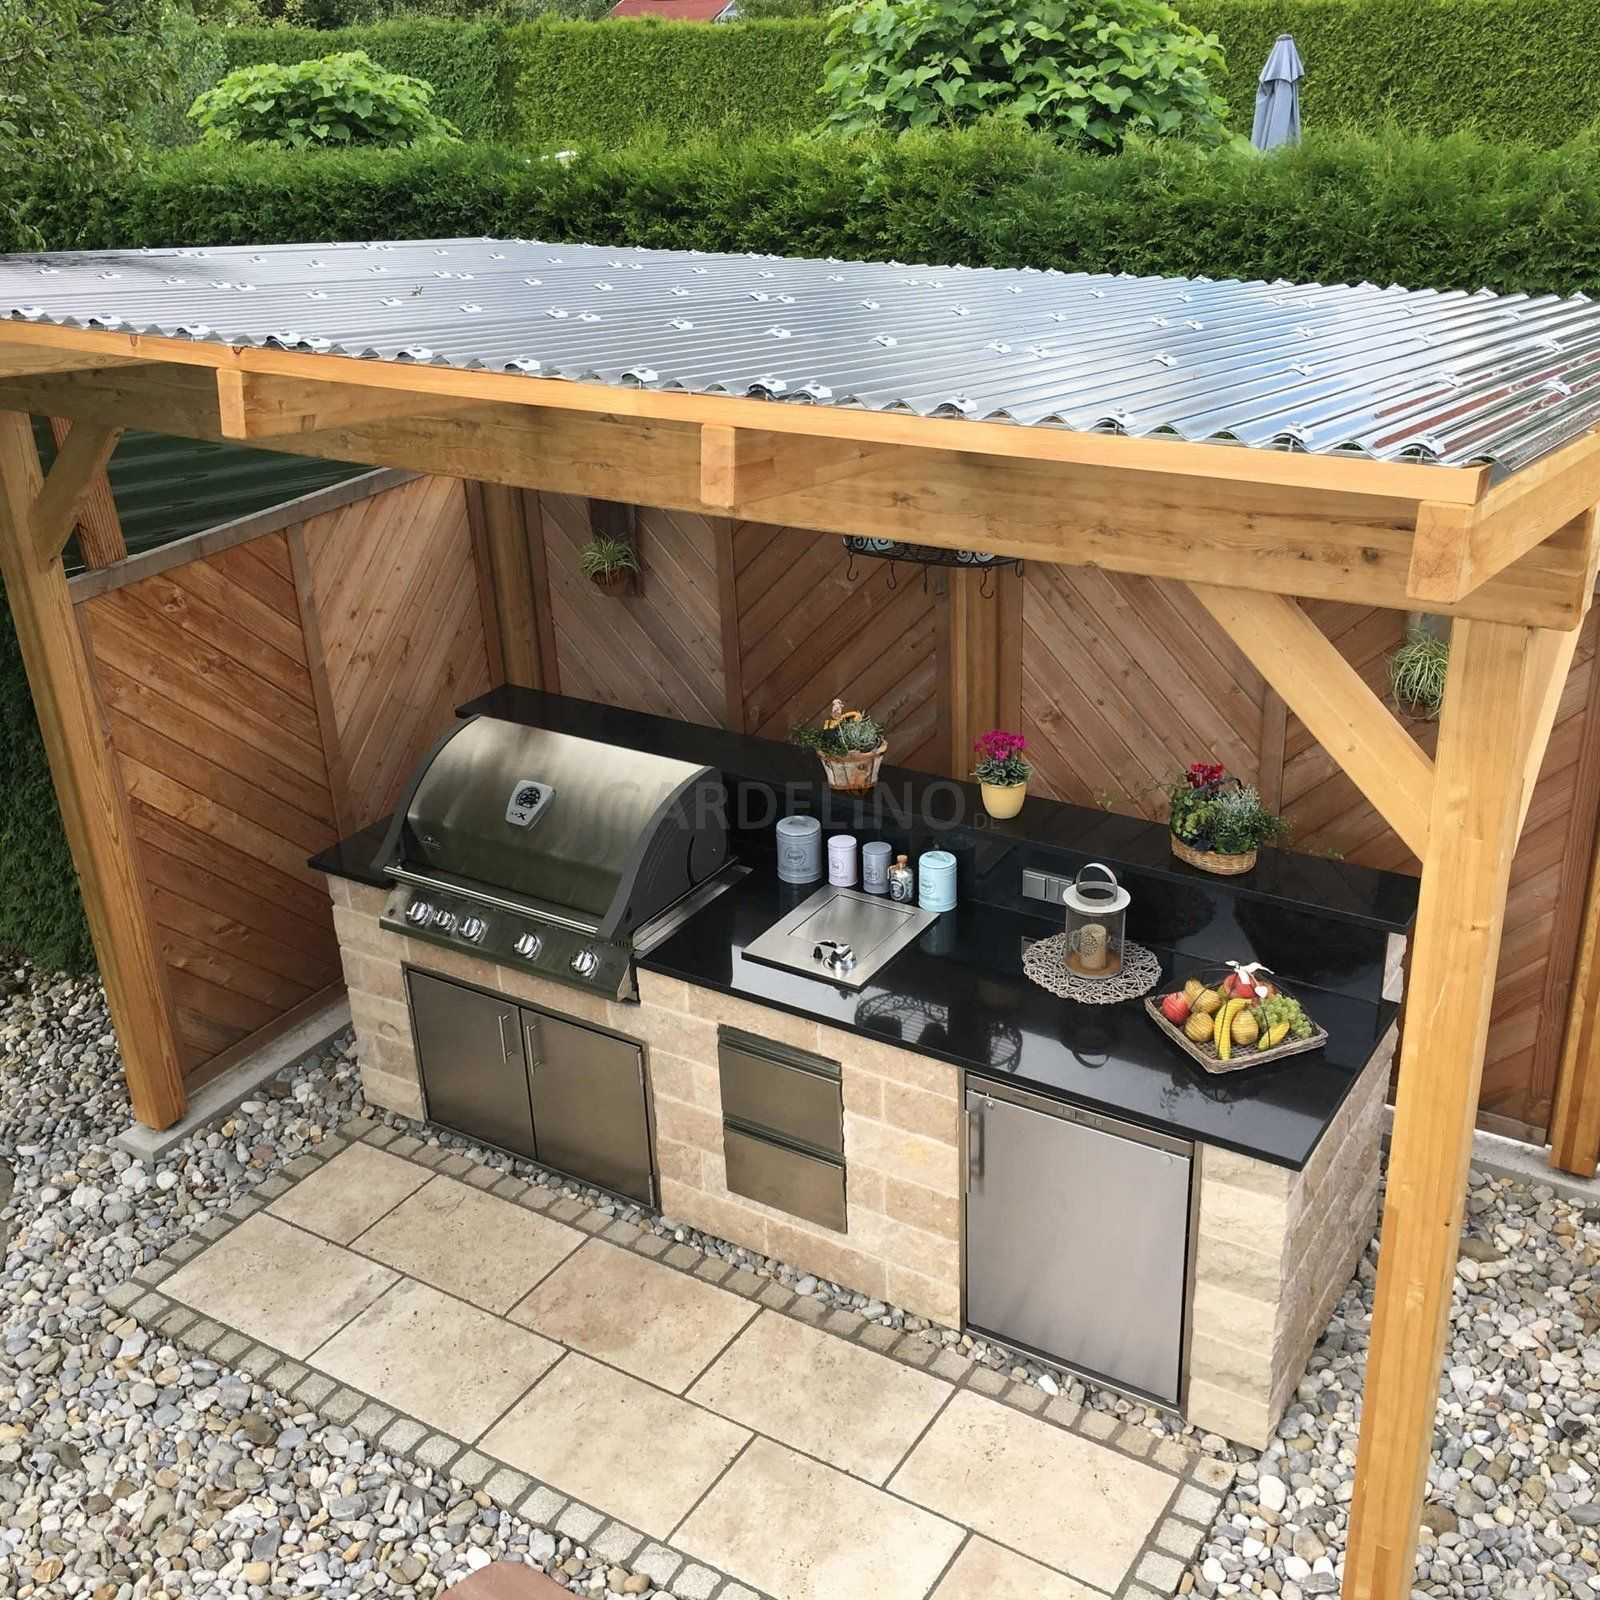 Patio Design Ideas In 2020 Outdoor Kitchen Decor Backyard Kitchen Budget Patio